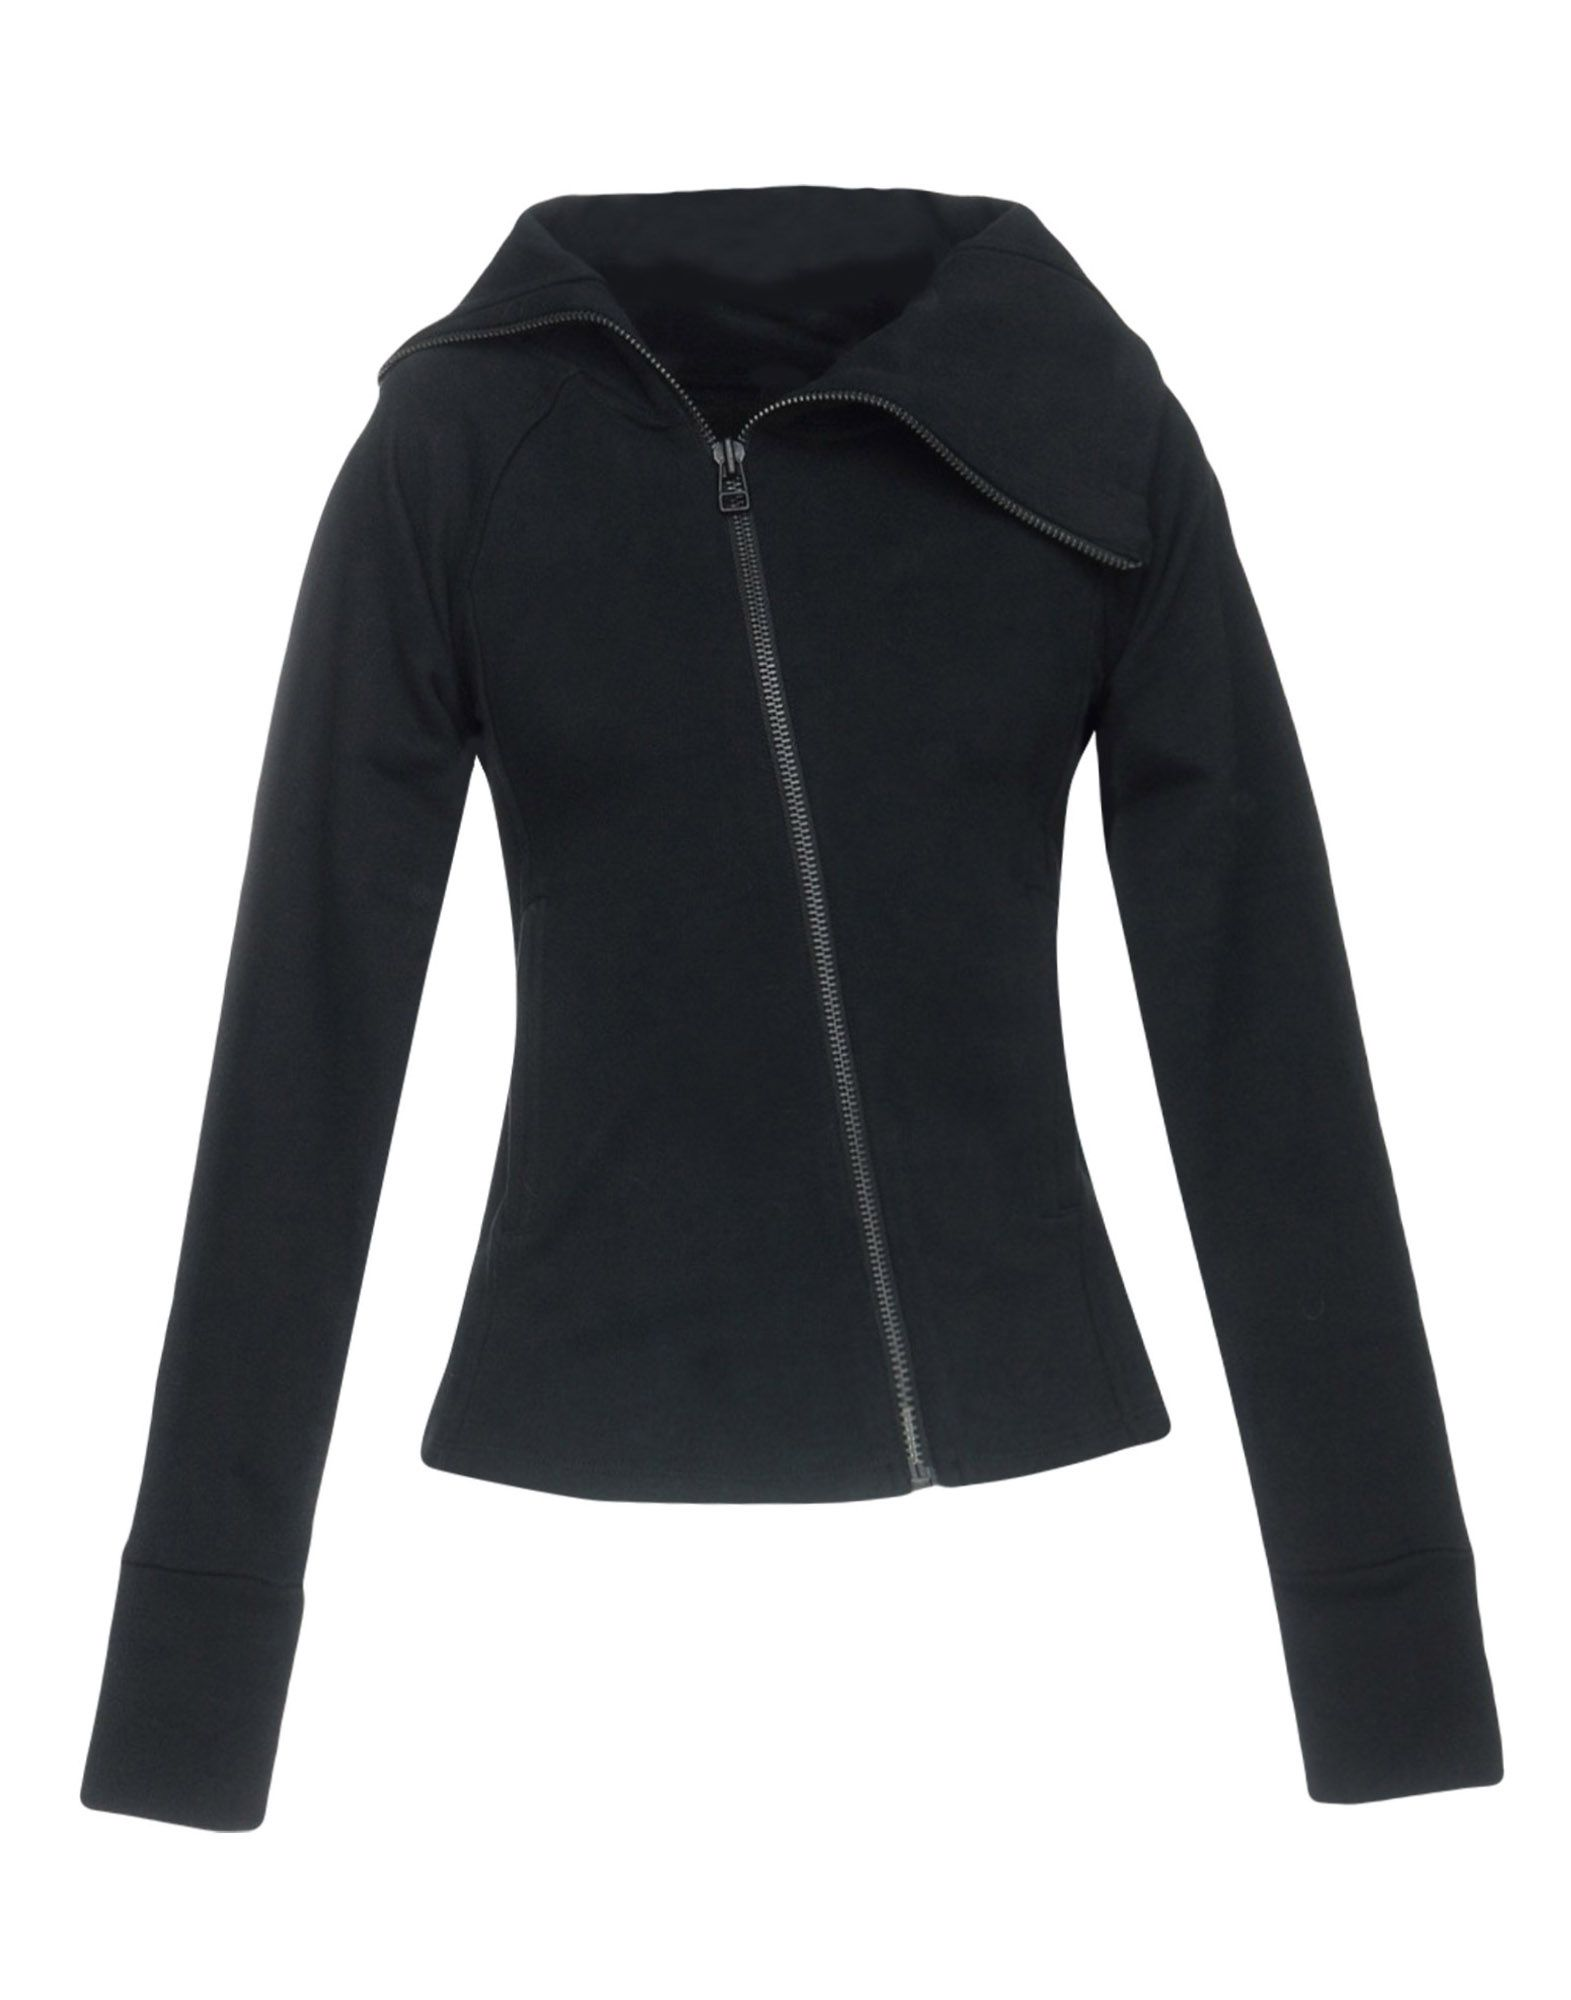 BARBARA I GONGINI Sweatshirt in Black